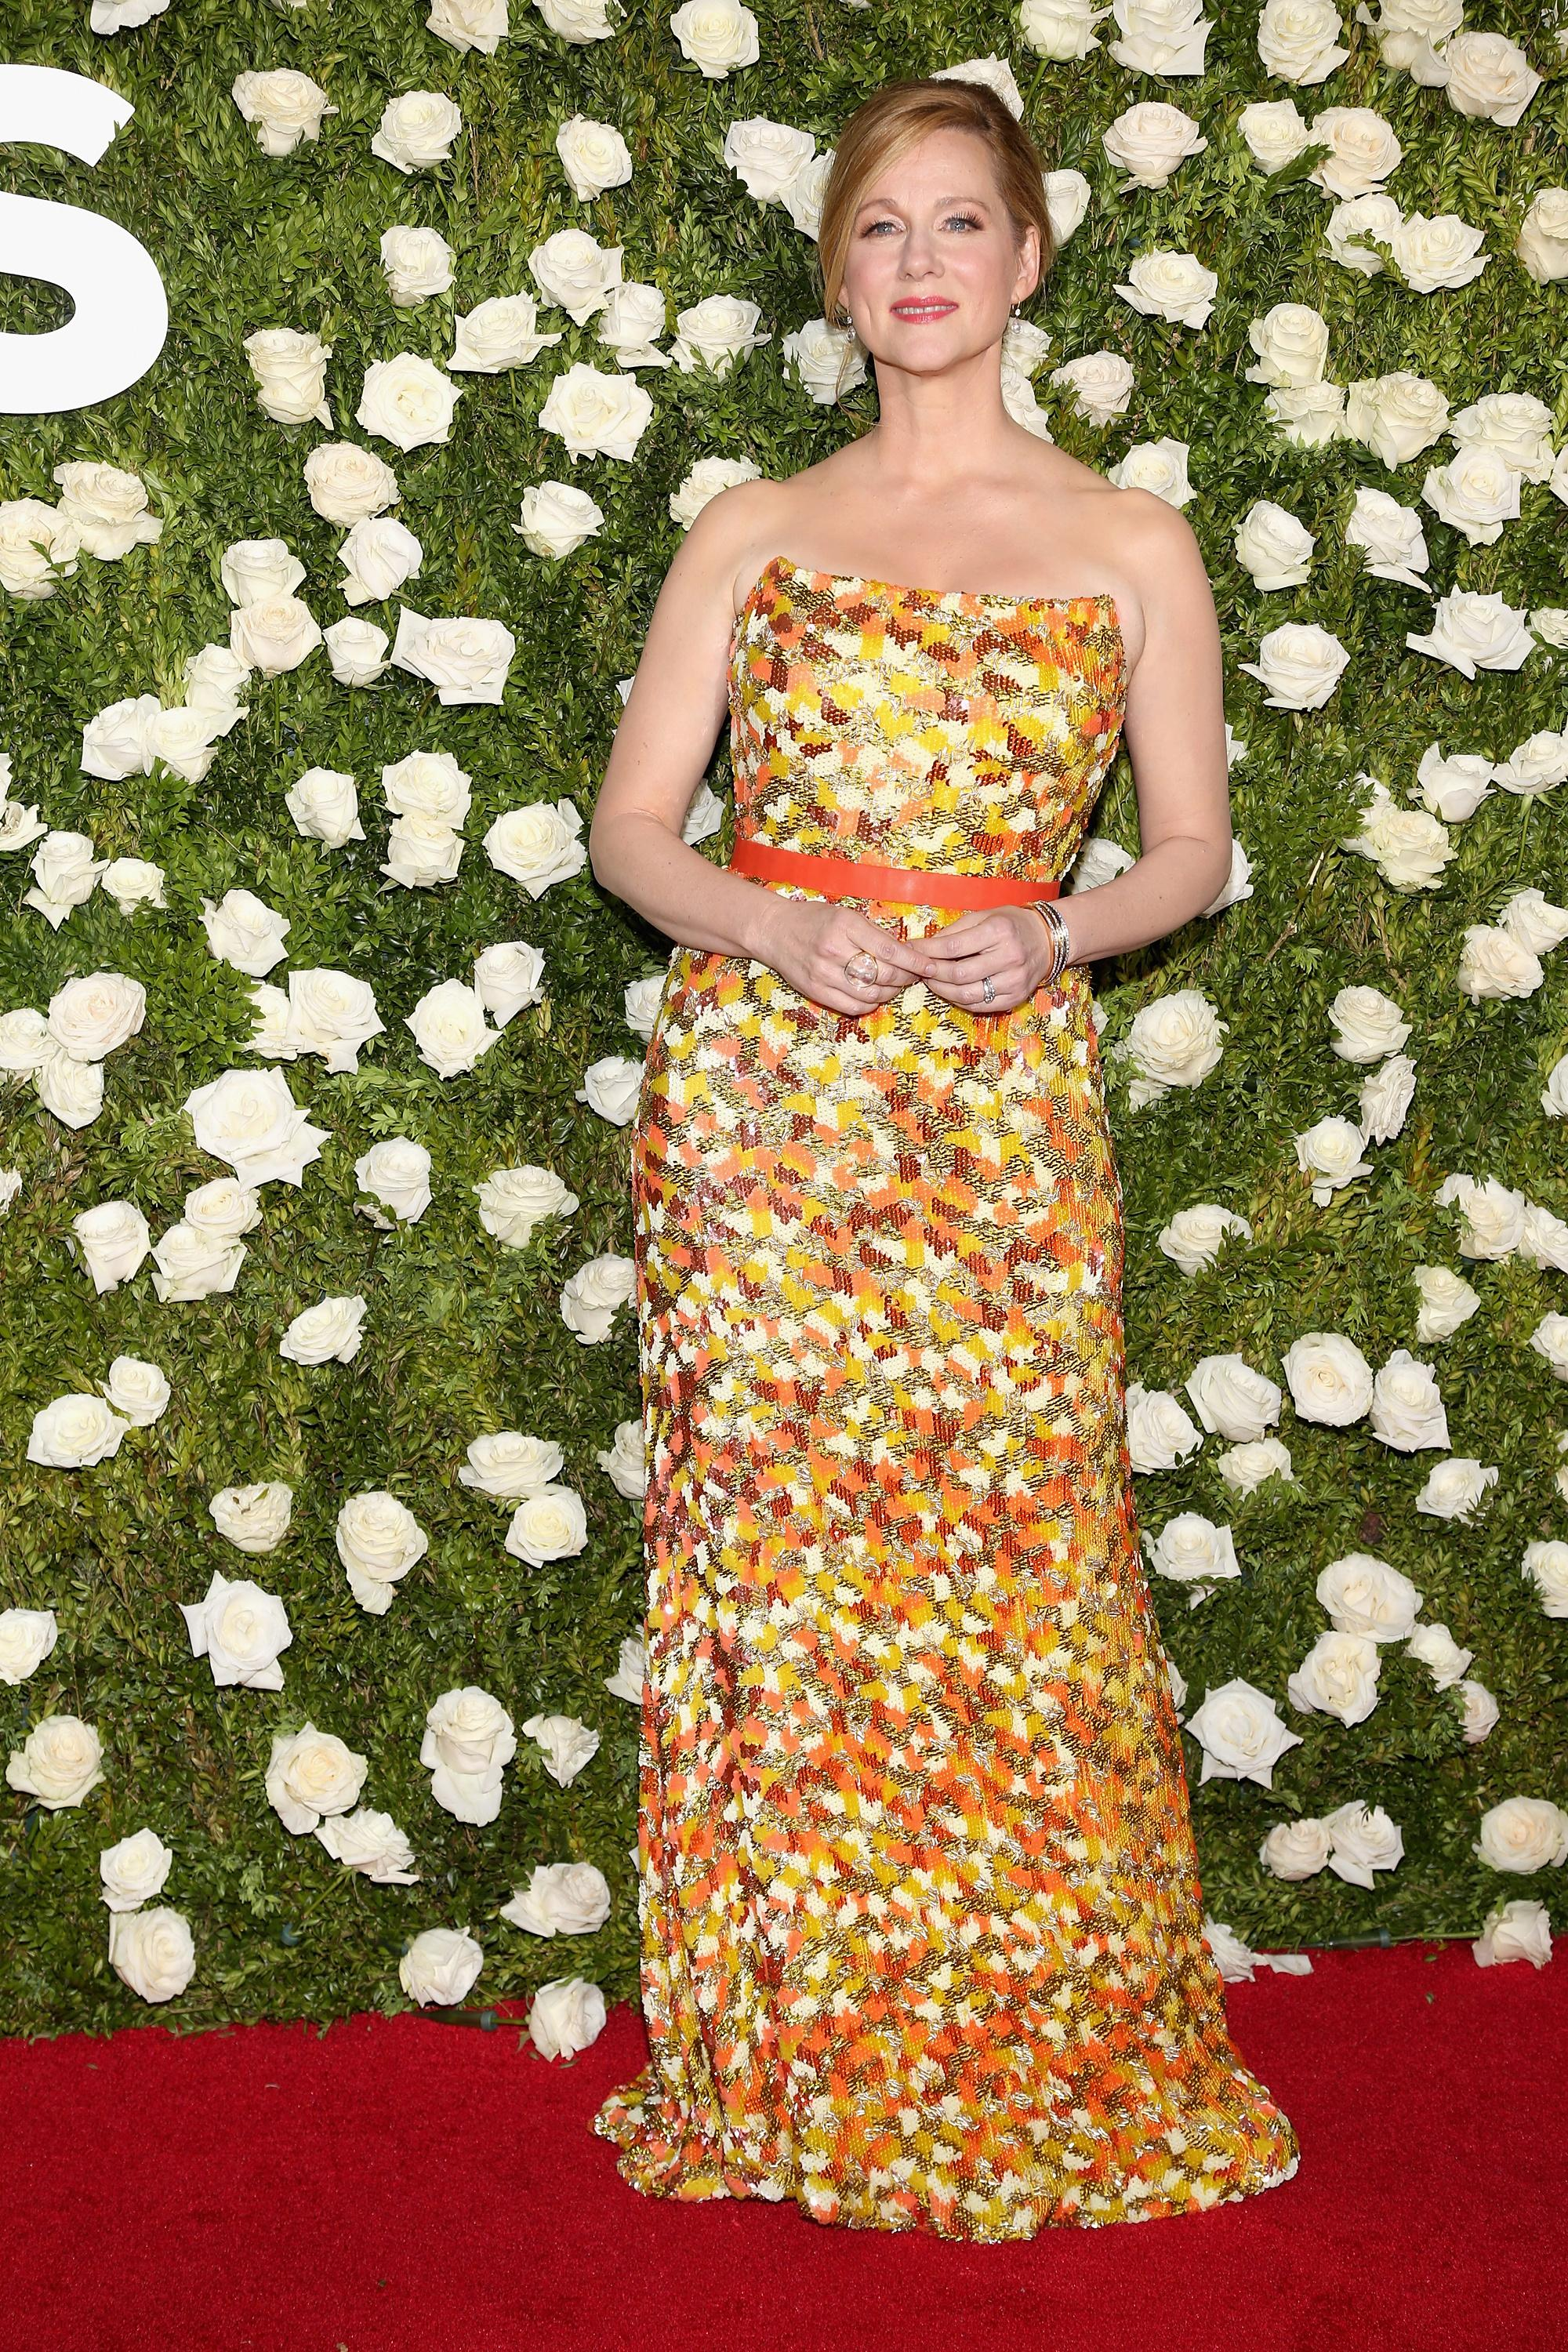 Laura Linney: 'I started to glow in the dark like an exotic cheetah'